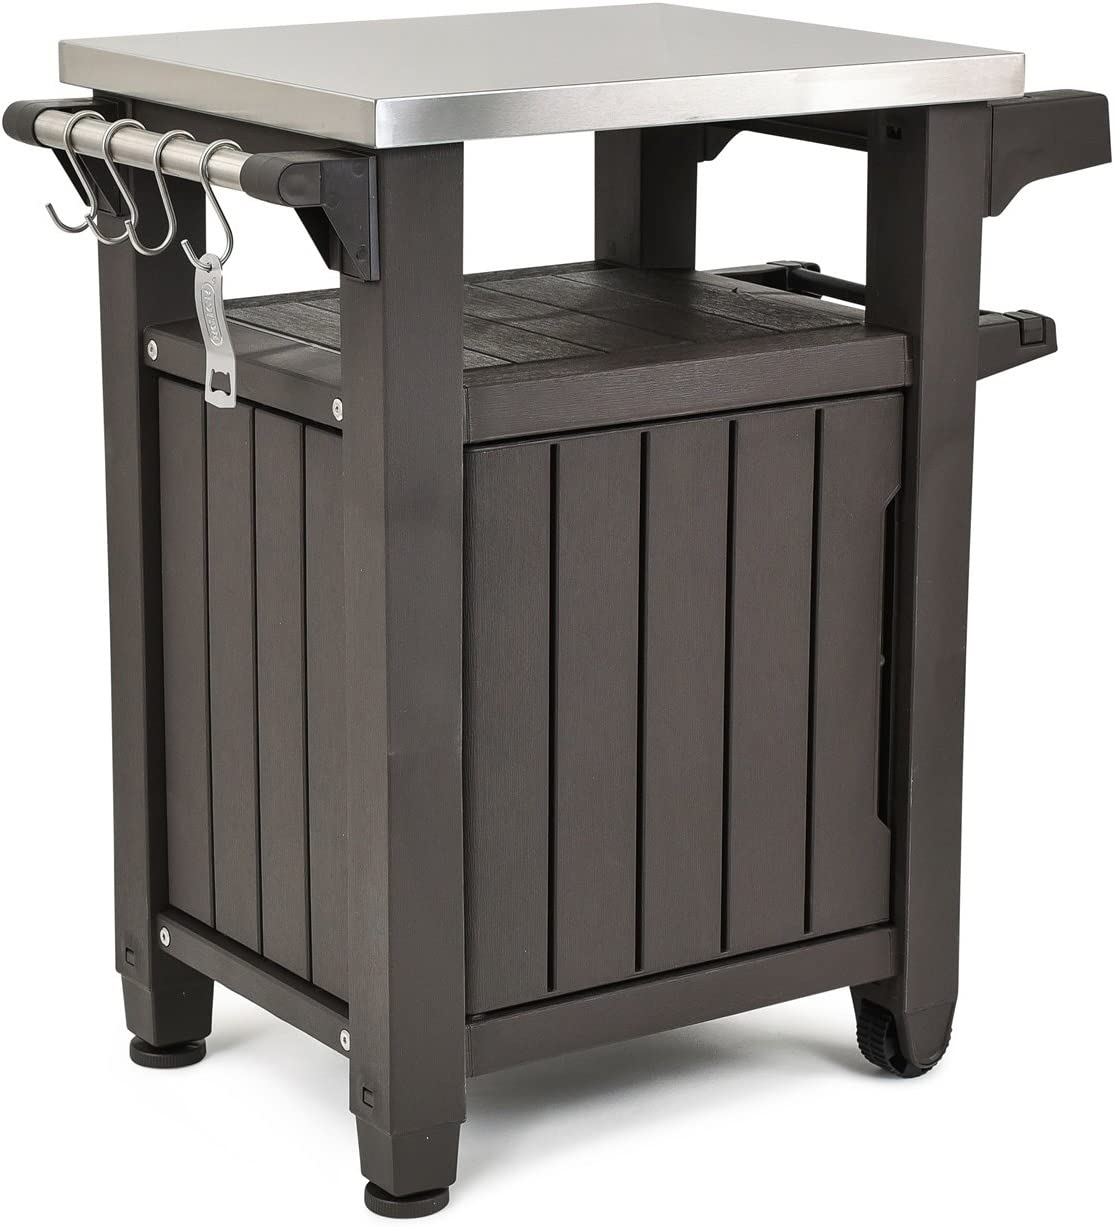 Amazon Com Keter Unity Portable Outdoor Table And Storage Cabinet With Hooks For Grill Accessories Stainless Steel Top For Patio Kitchen Island Or Bar Cart Espresso Brown Garden Outdoor